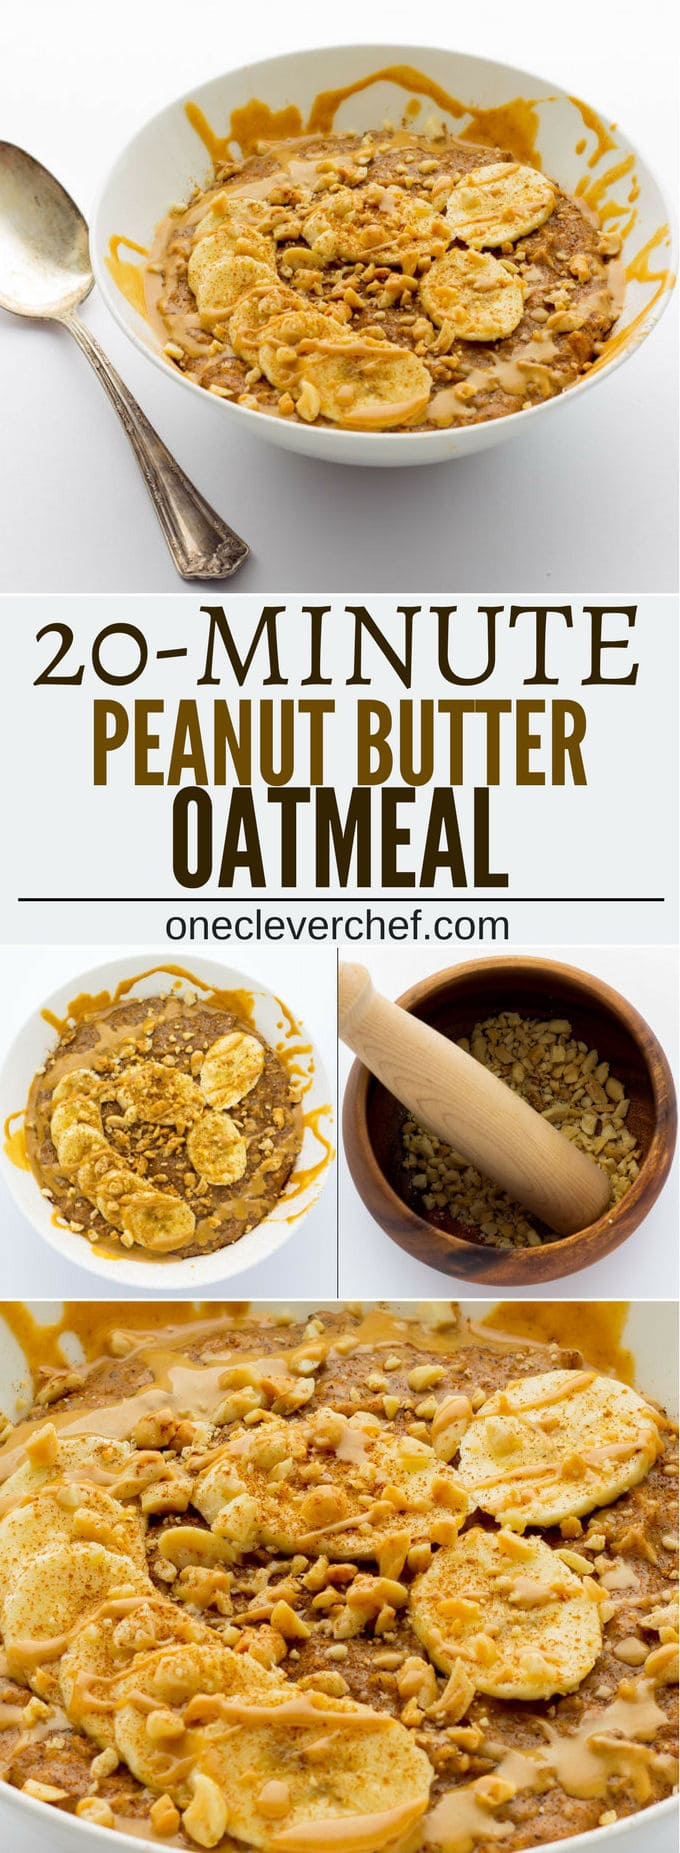 This Peanut Butter Porridge is easy to make, SO comforting and extra healthy! Vegan, Gluten-Free, Dairy-free | www.onecleverchef.com